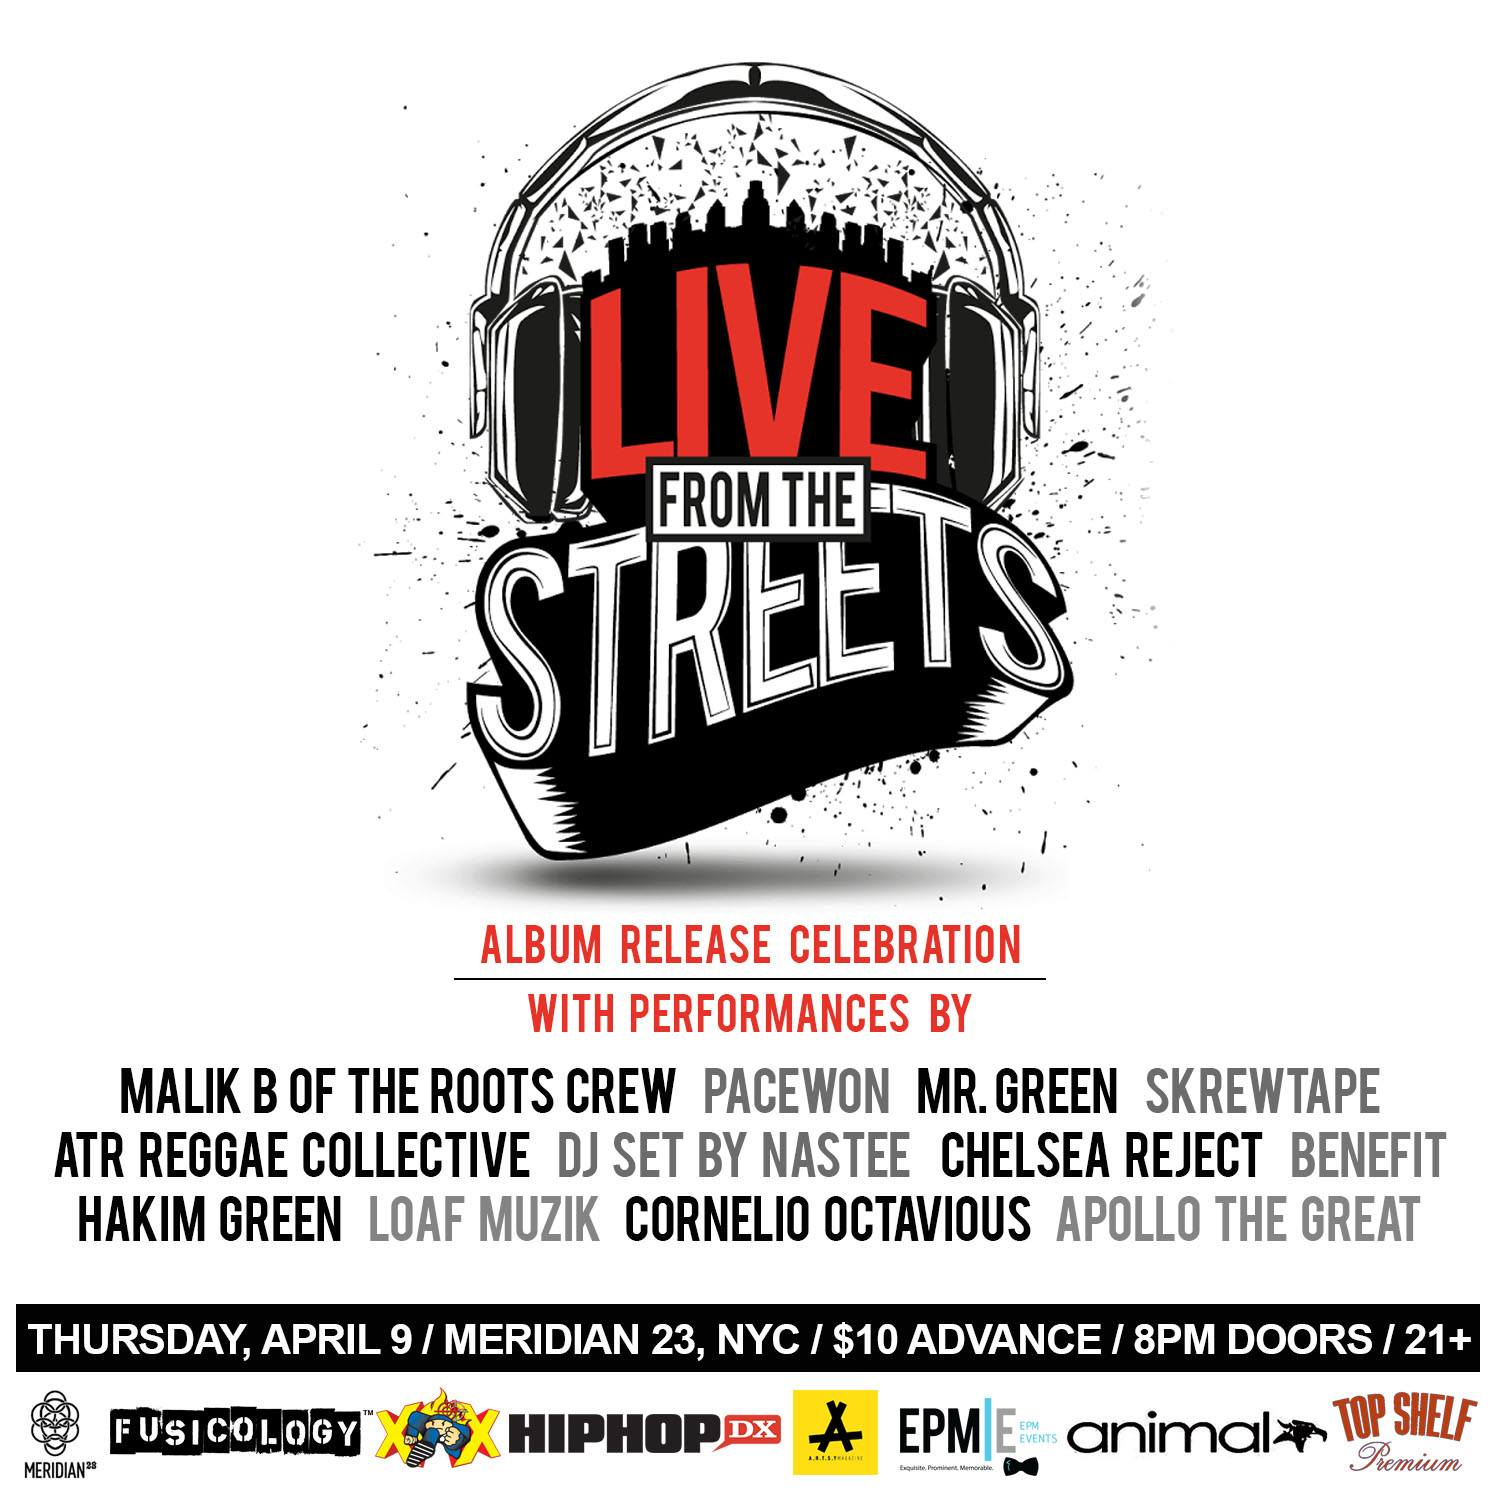 """Mr. Green's """"Live From The Streets"""" Album Release  Meridian23 4.9.15"""